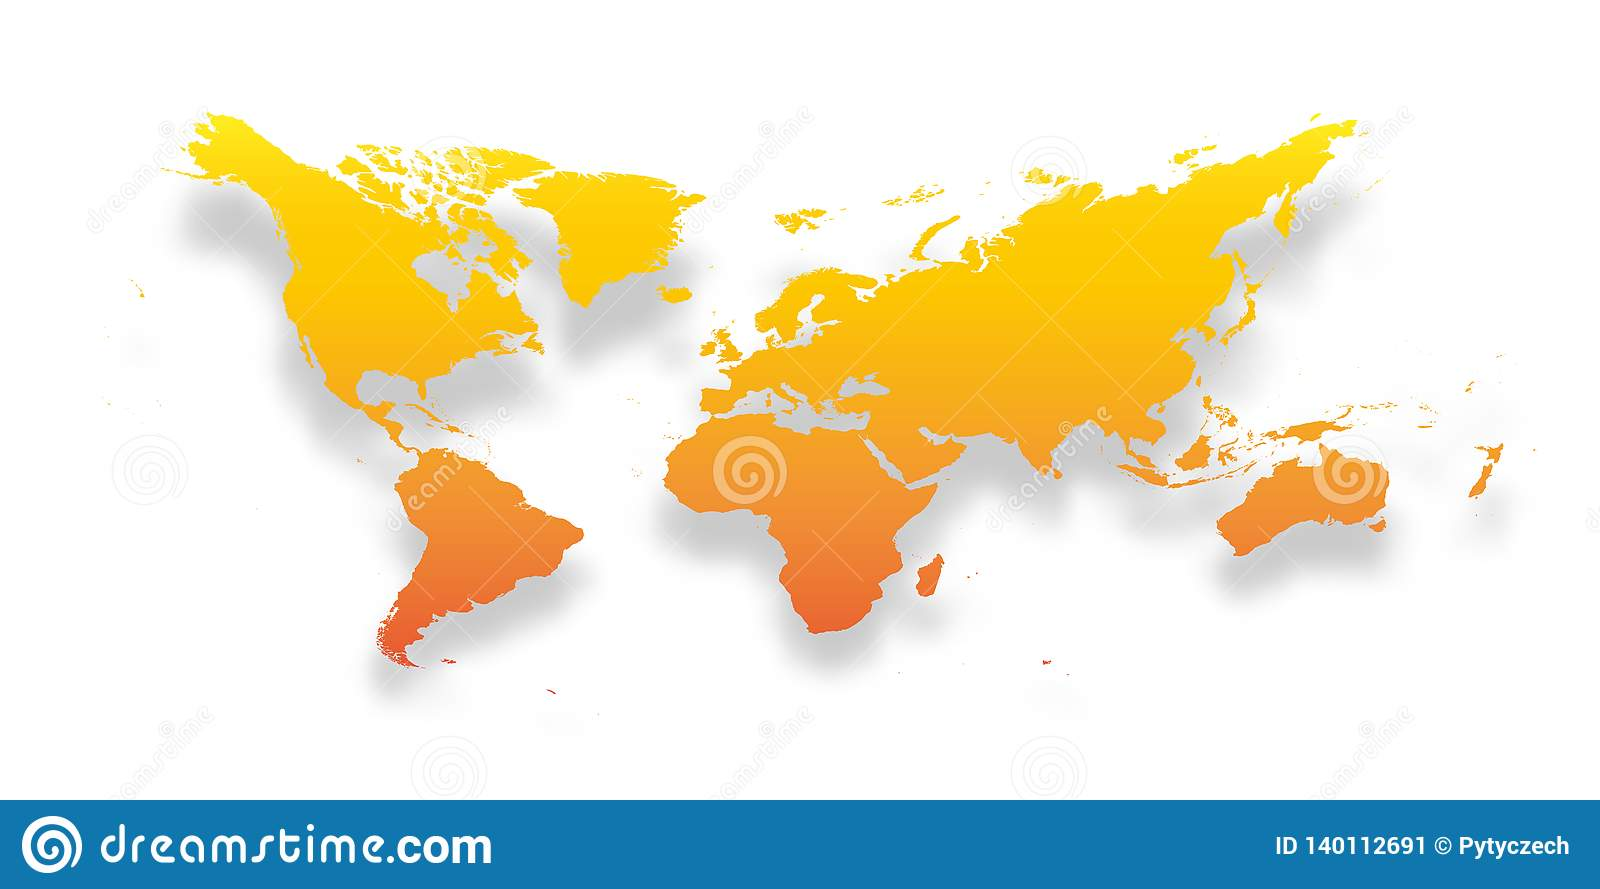 Map Of The World Simple.Map Of World Simple Yellow Orange Gradient Silhouette With Dropped